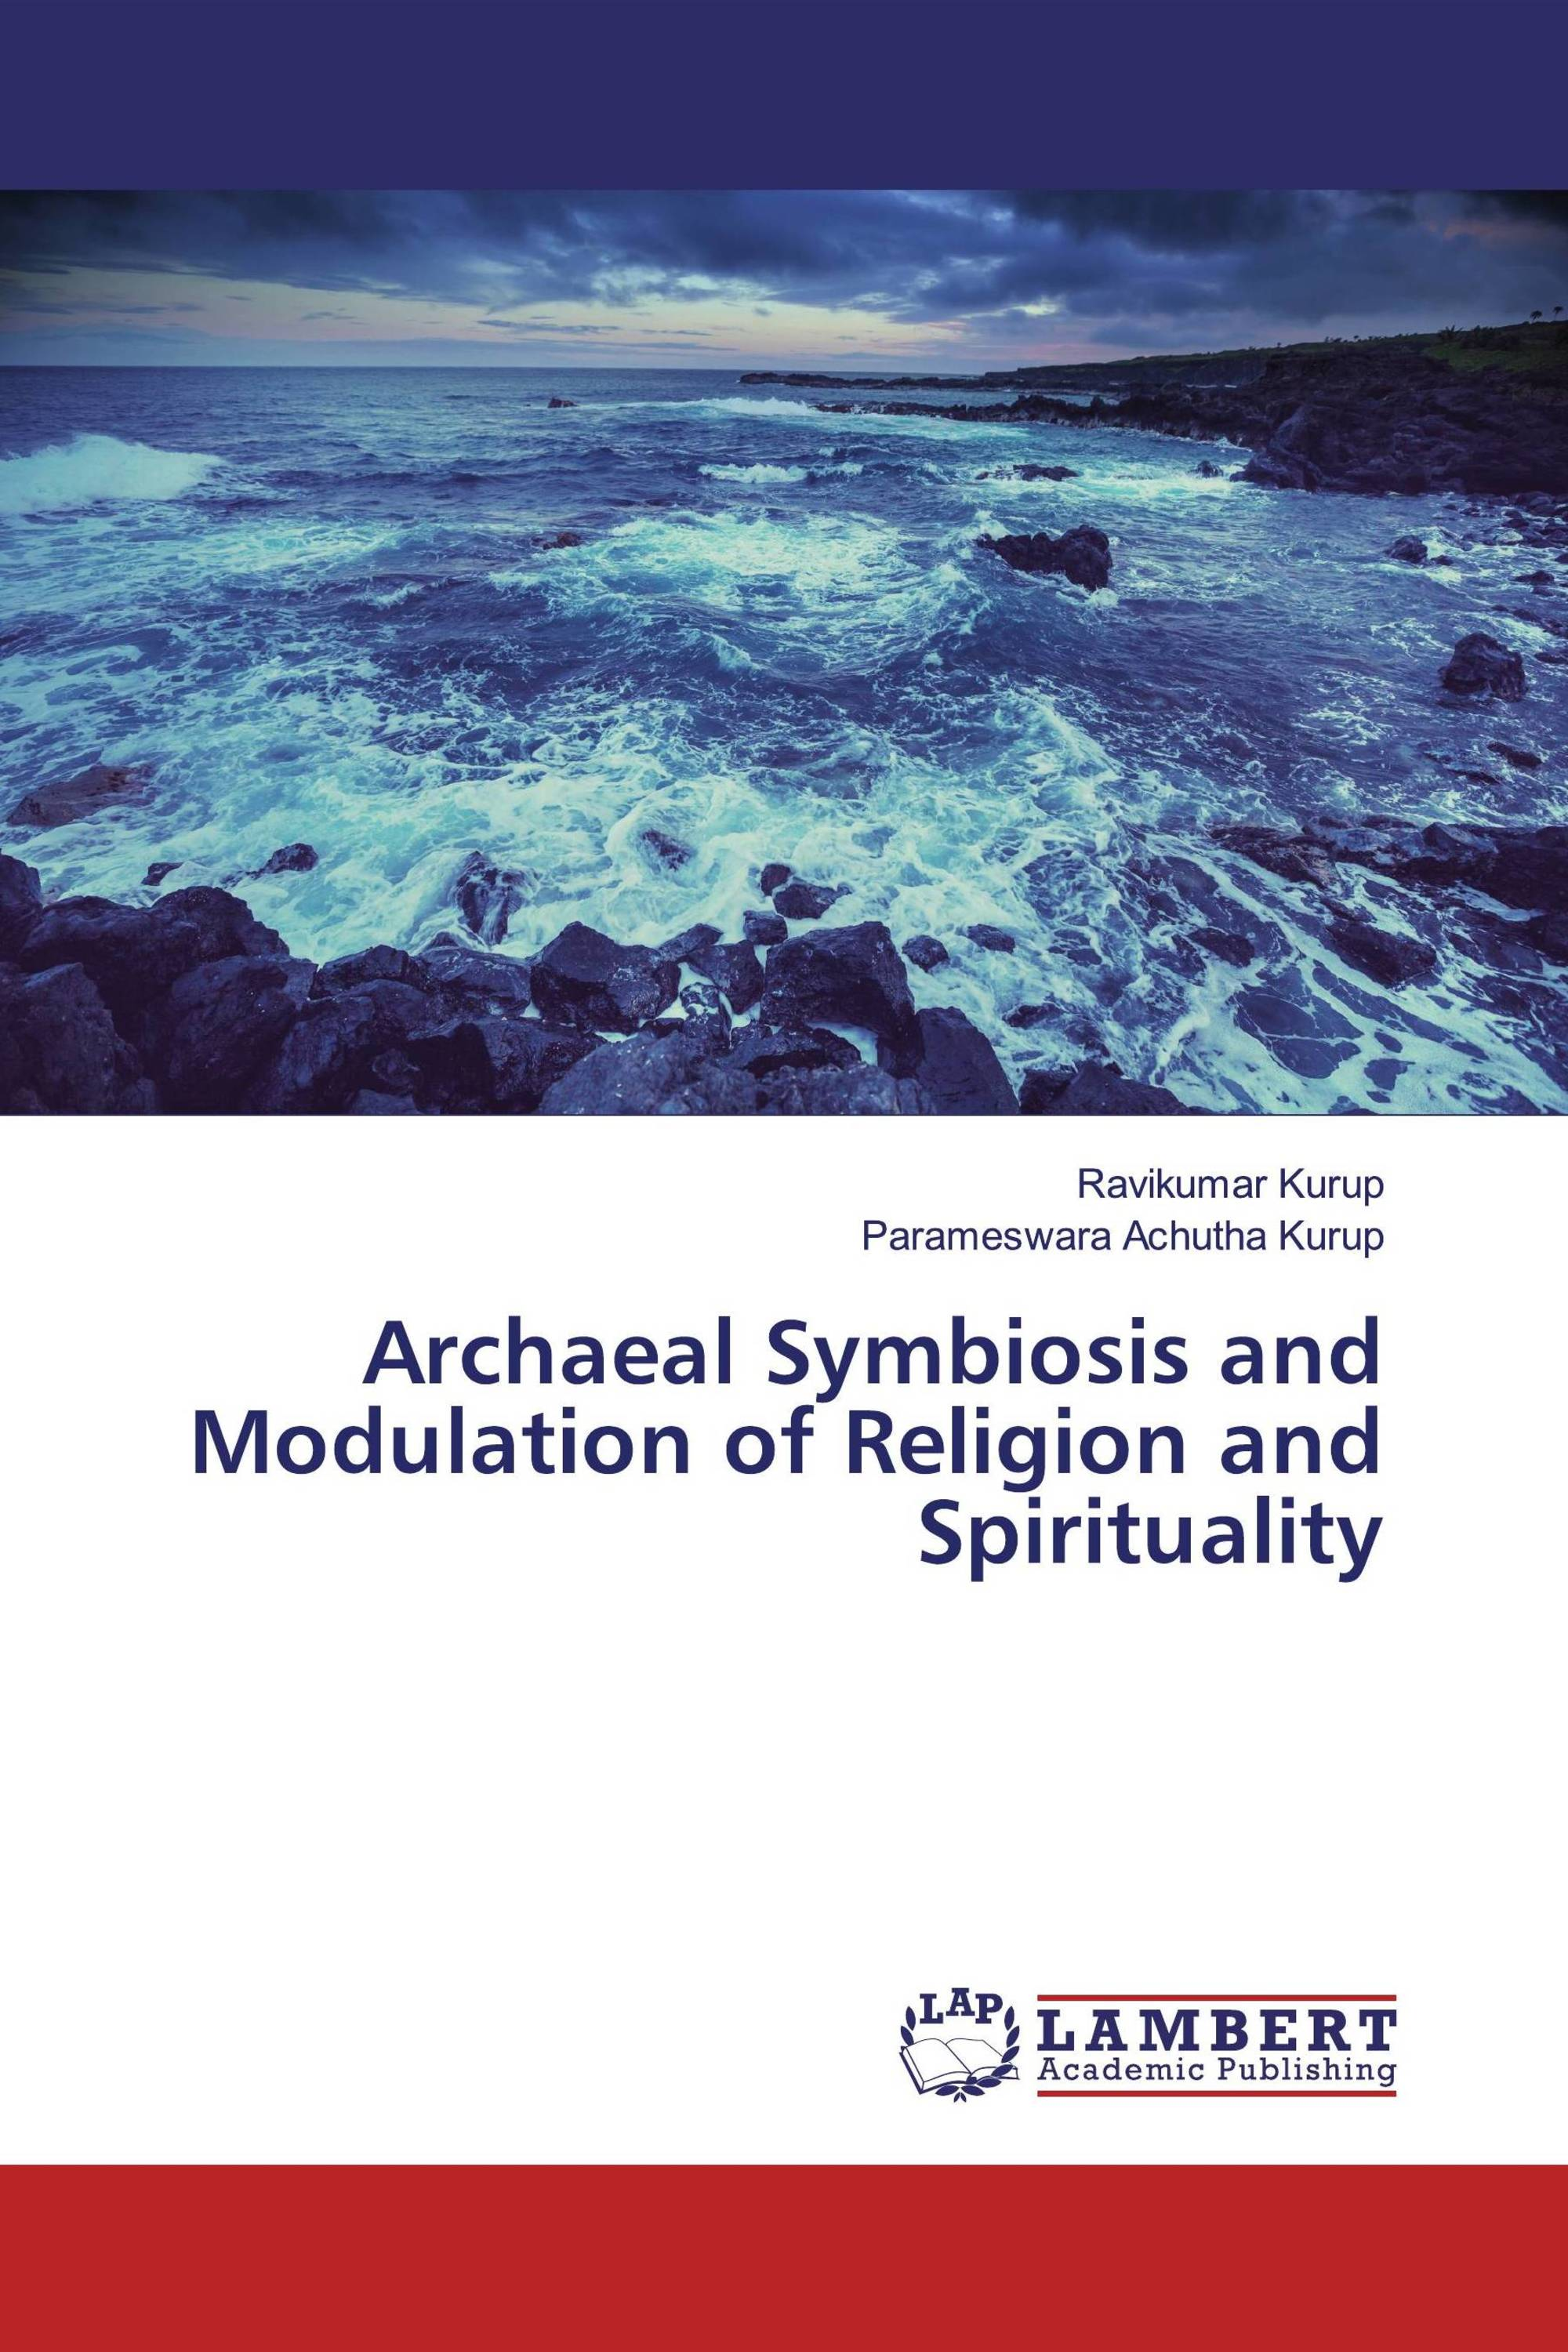 Archaeal Symbiosis and Modulation of Religion and Spirituality